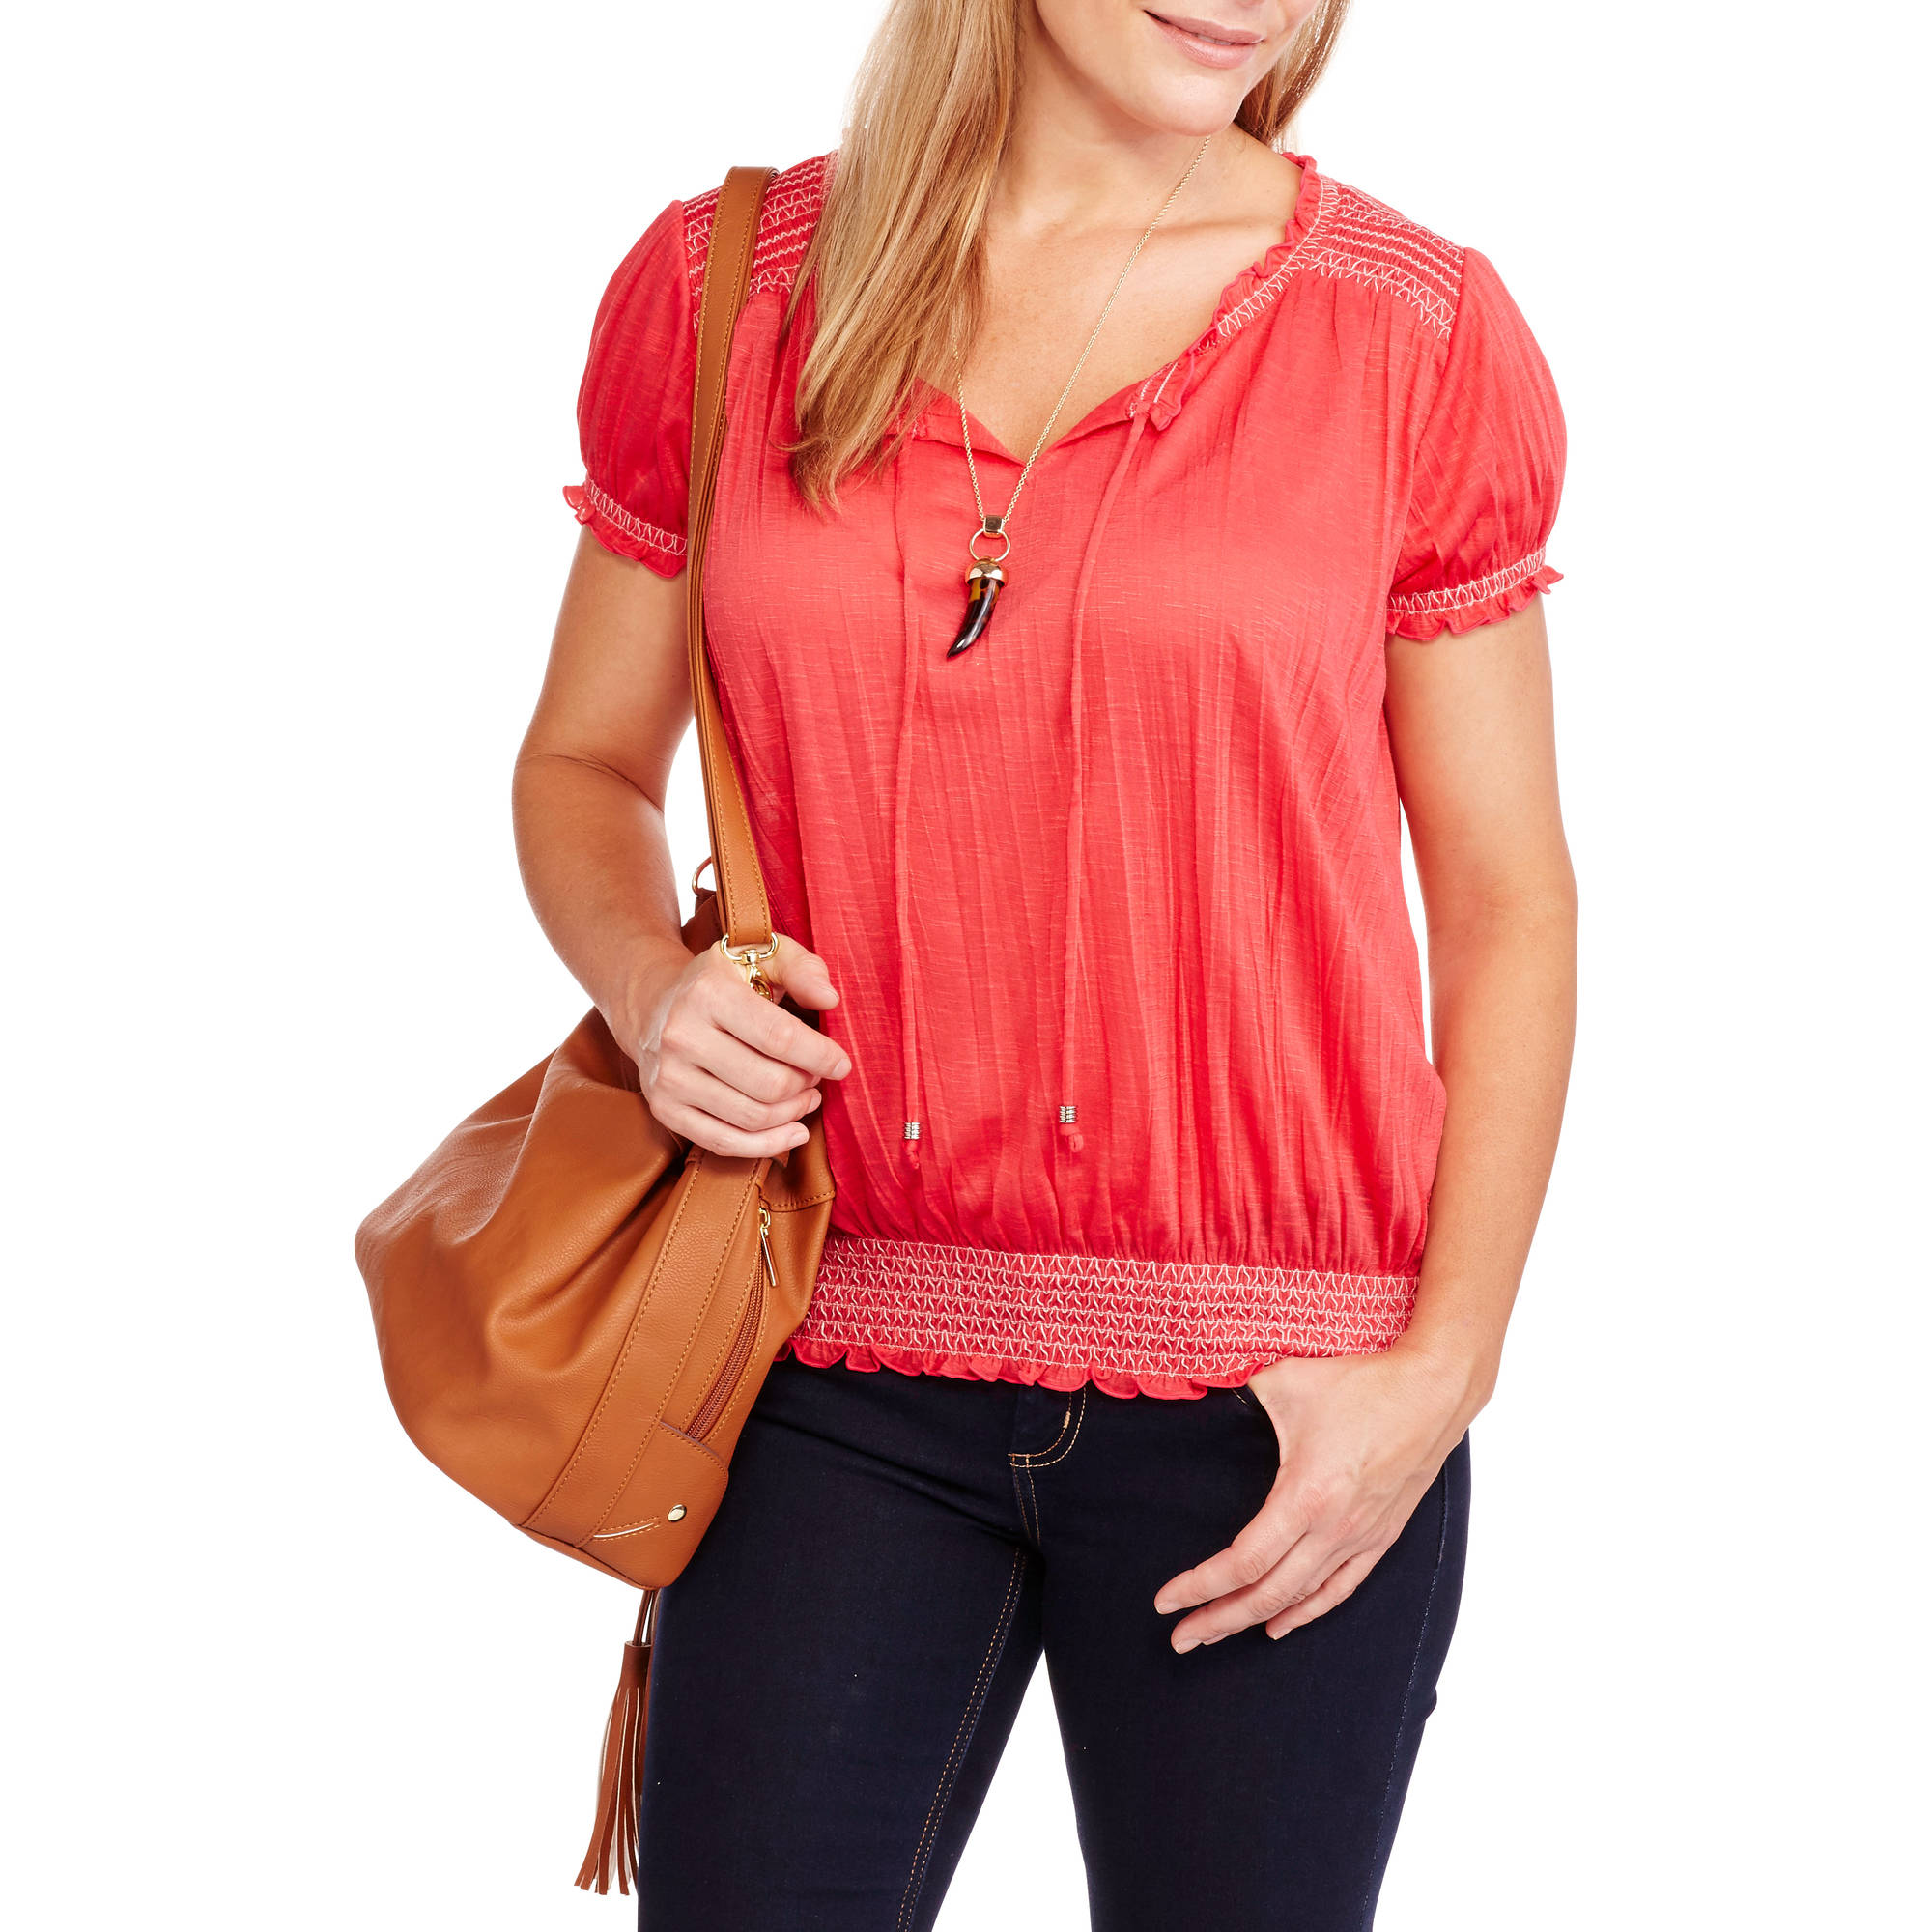 Faded Glory Womens Short Sleeve Peasant Top with Front Tassels and Elastic Waistband